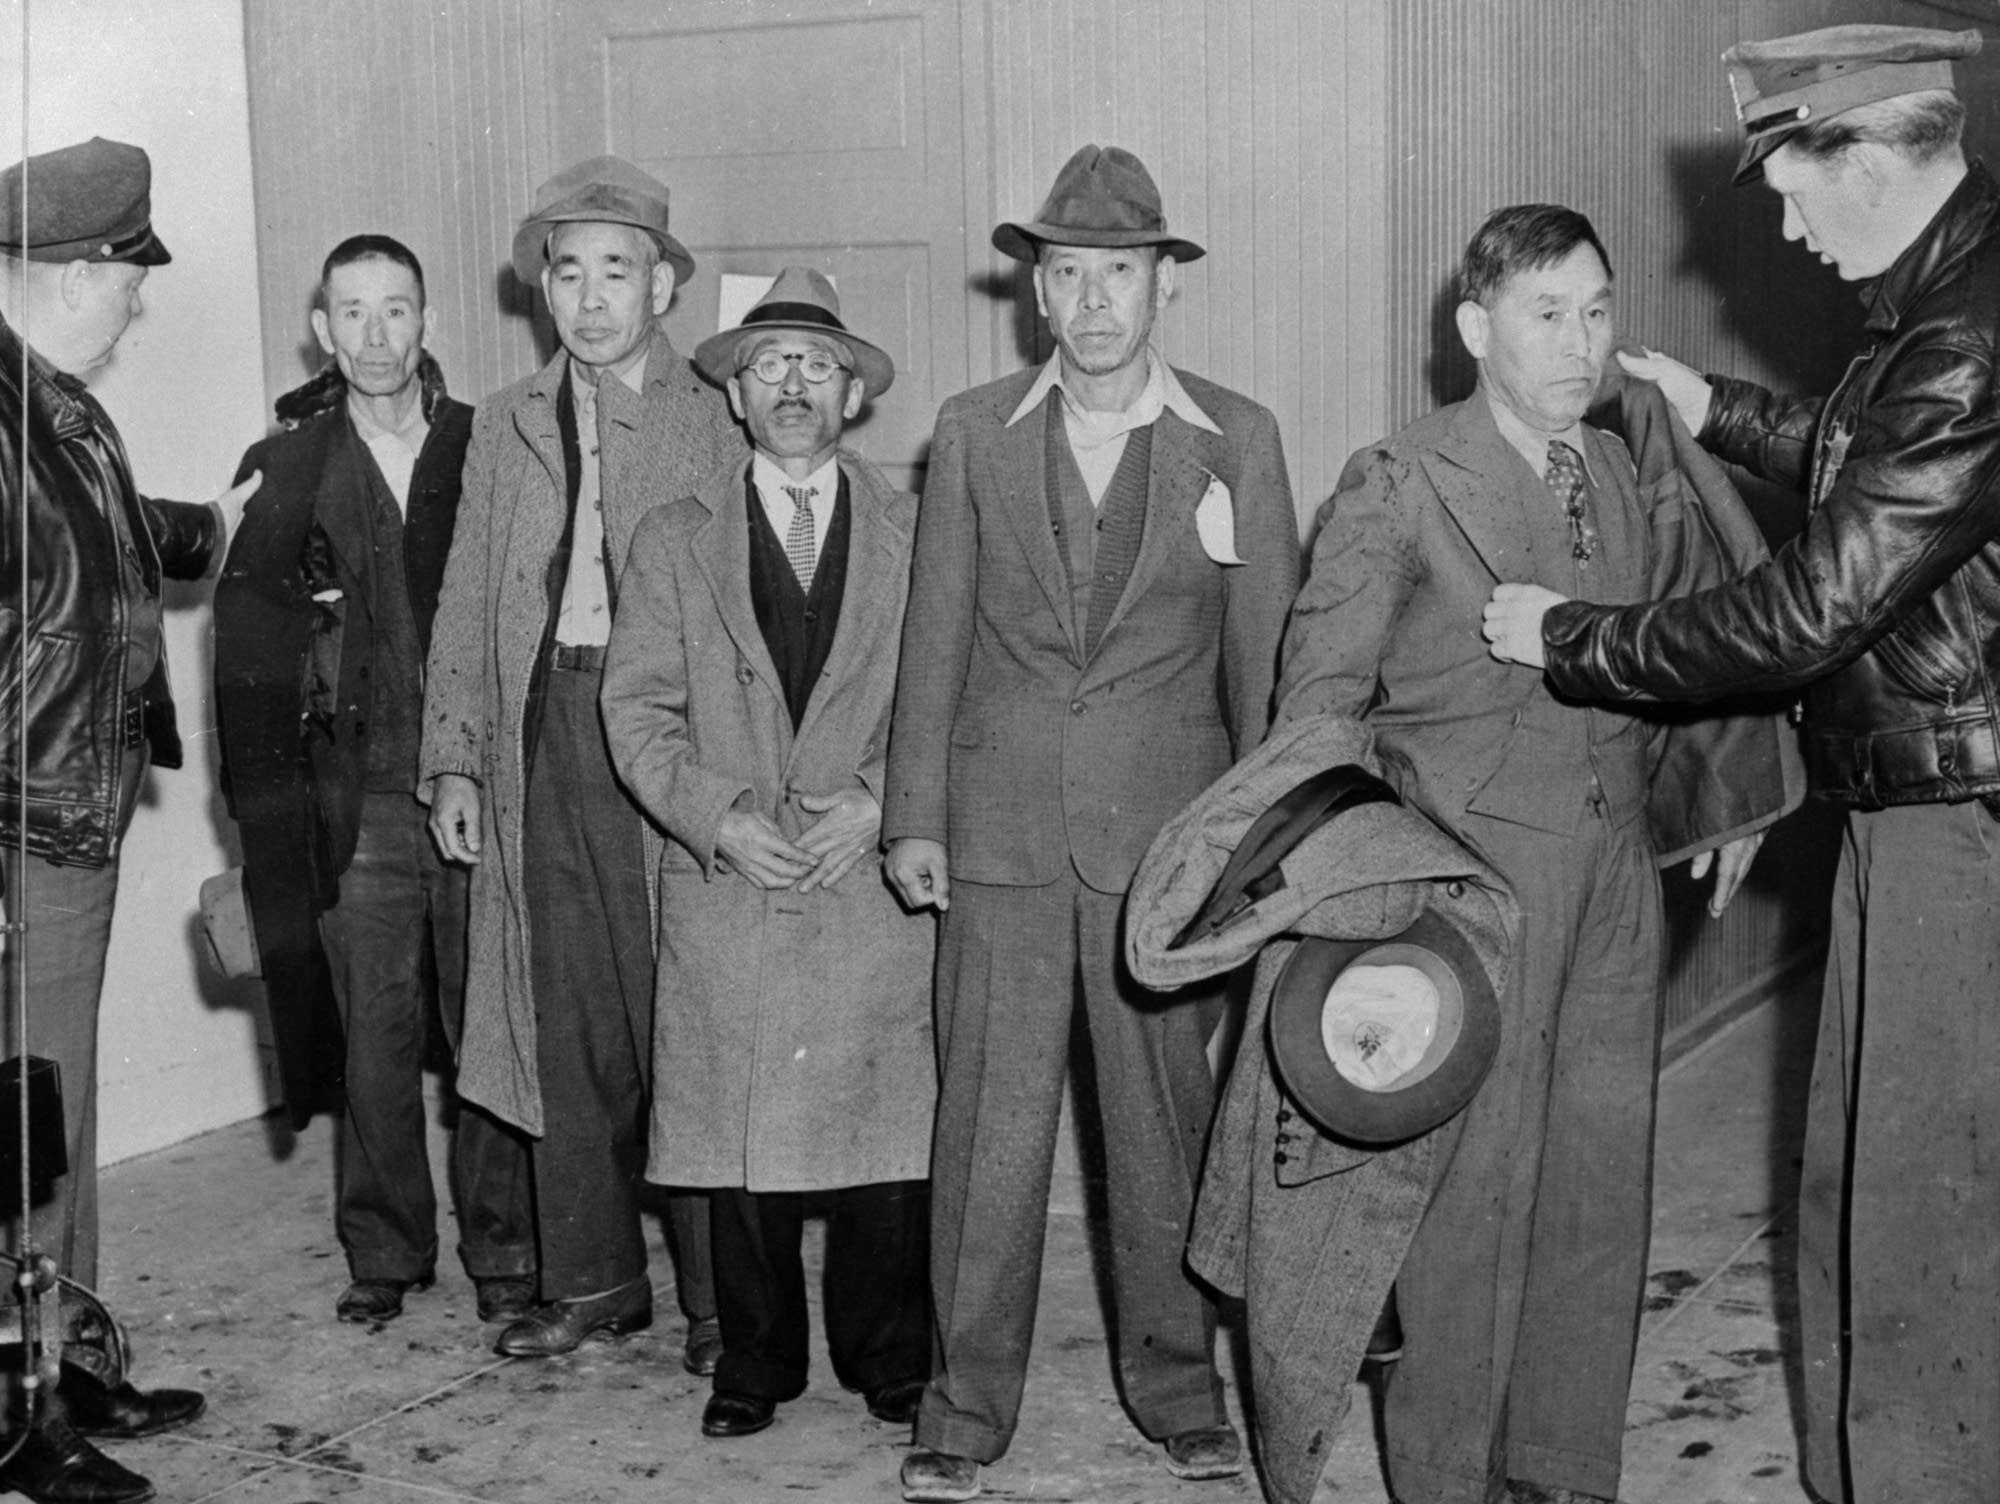 Law enforcement officers search Japanese aliens during WWII.